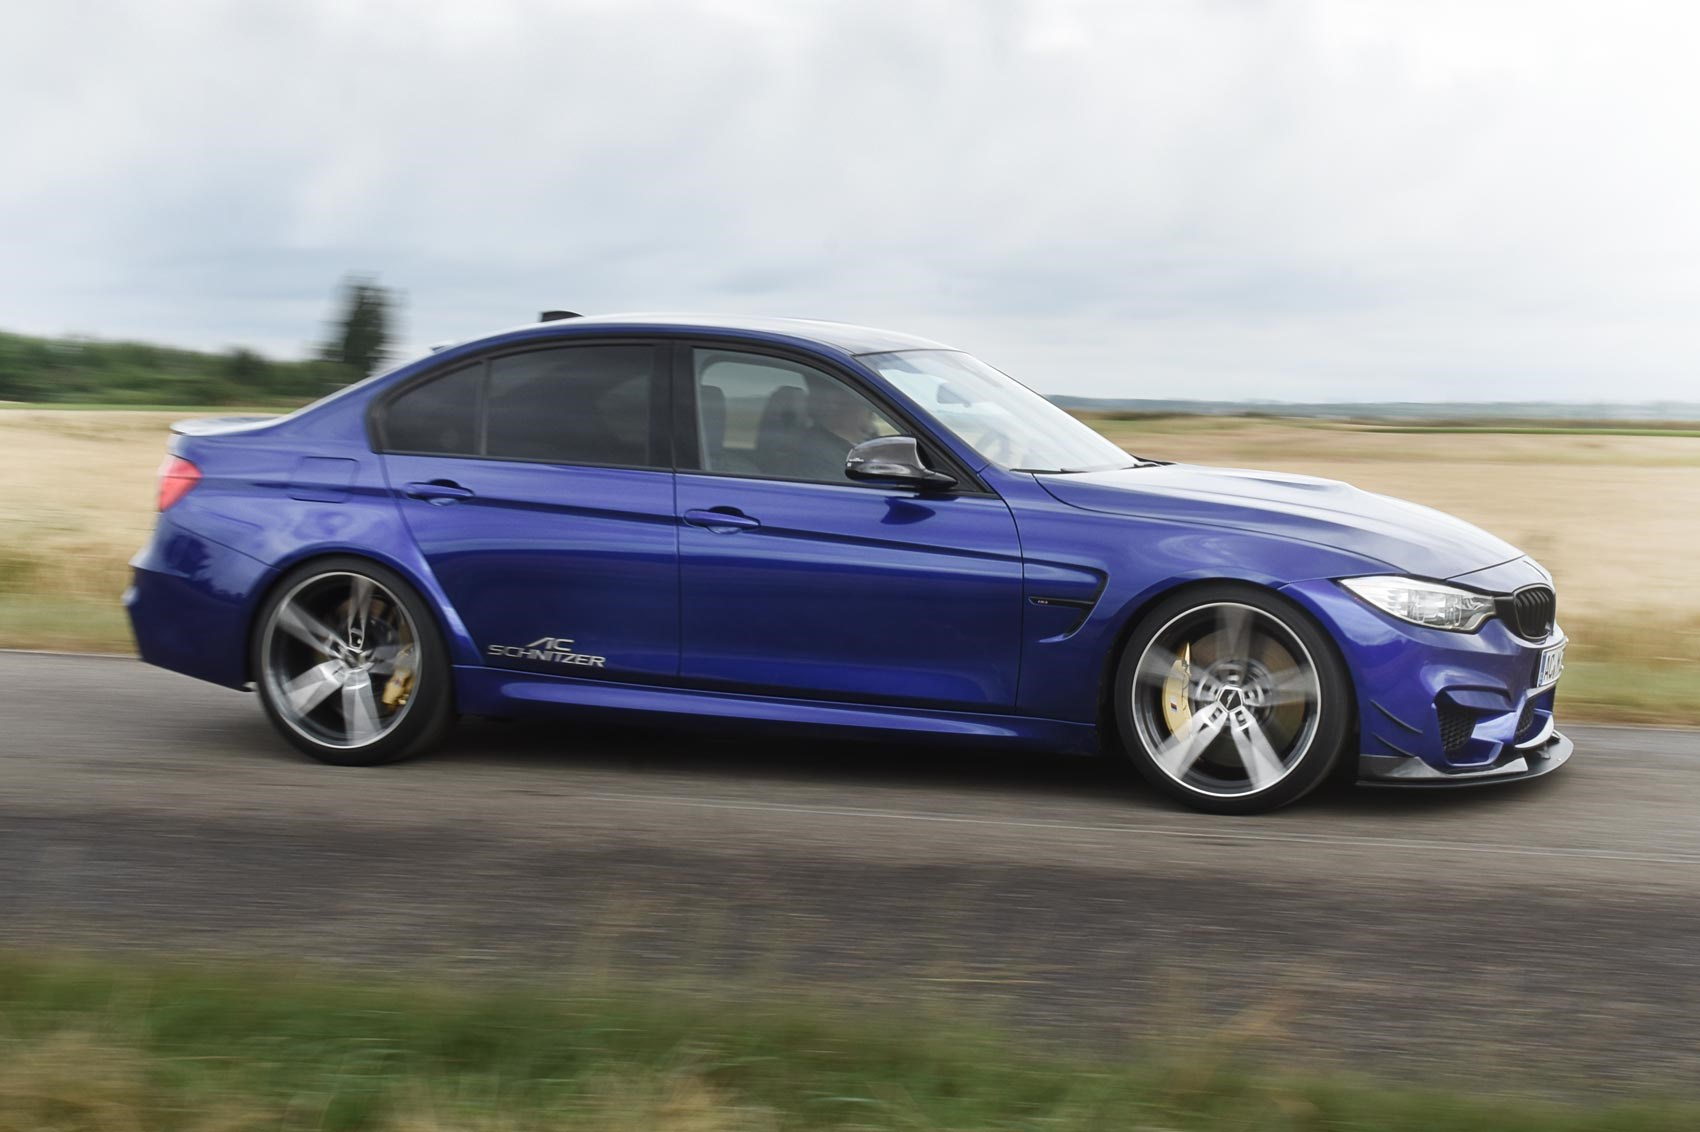 2004 ac schnitzer acs3 3series e46 coupe images hd cars wallpaper car reviews independent road tests by car magazine ac schnitzer acs3 sport 2016 review vanachro images vanachro Image collections